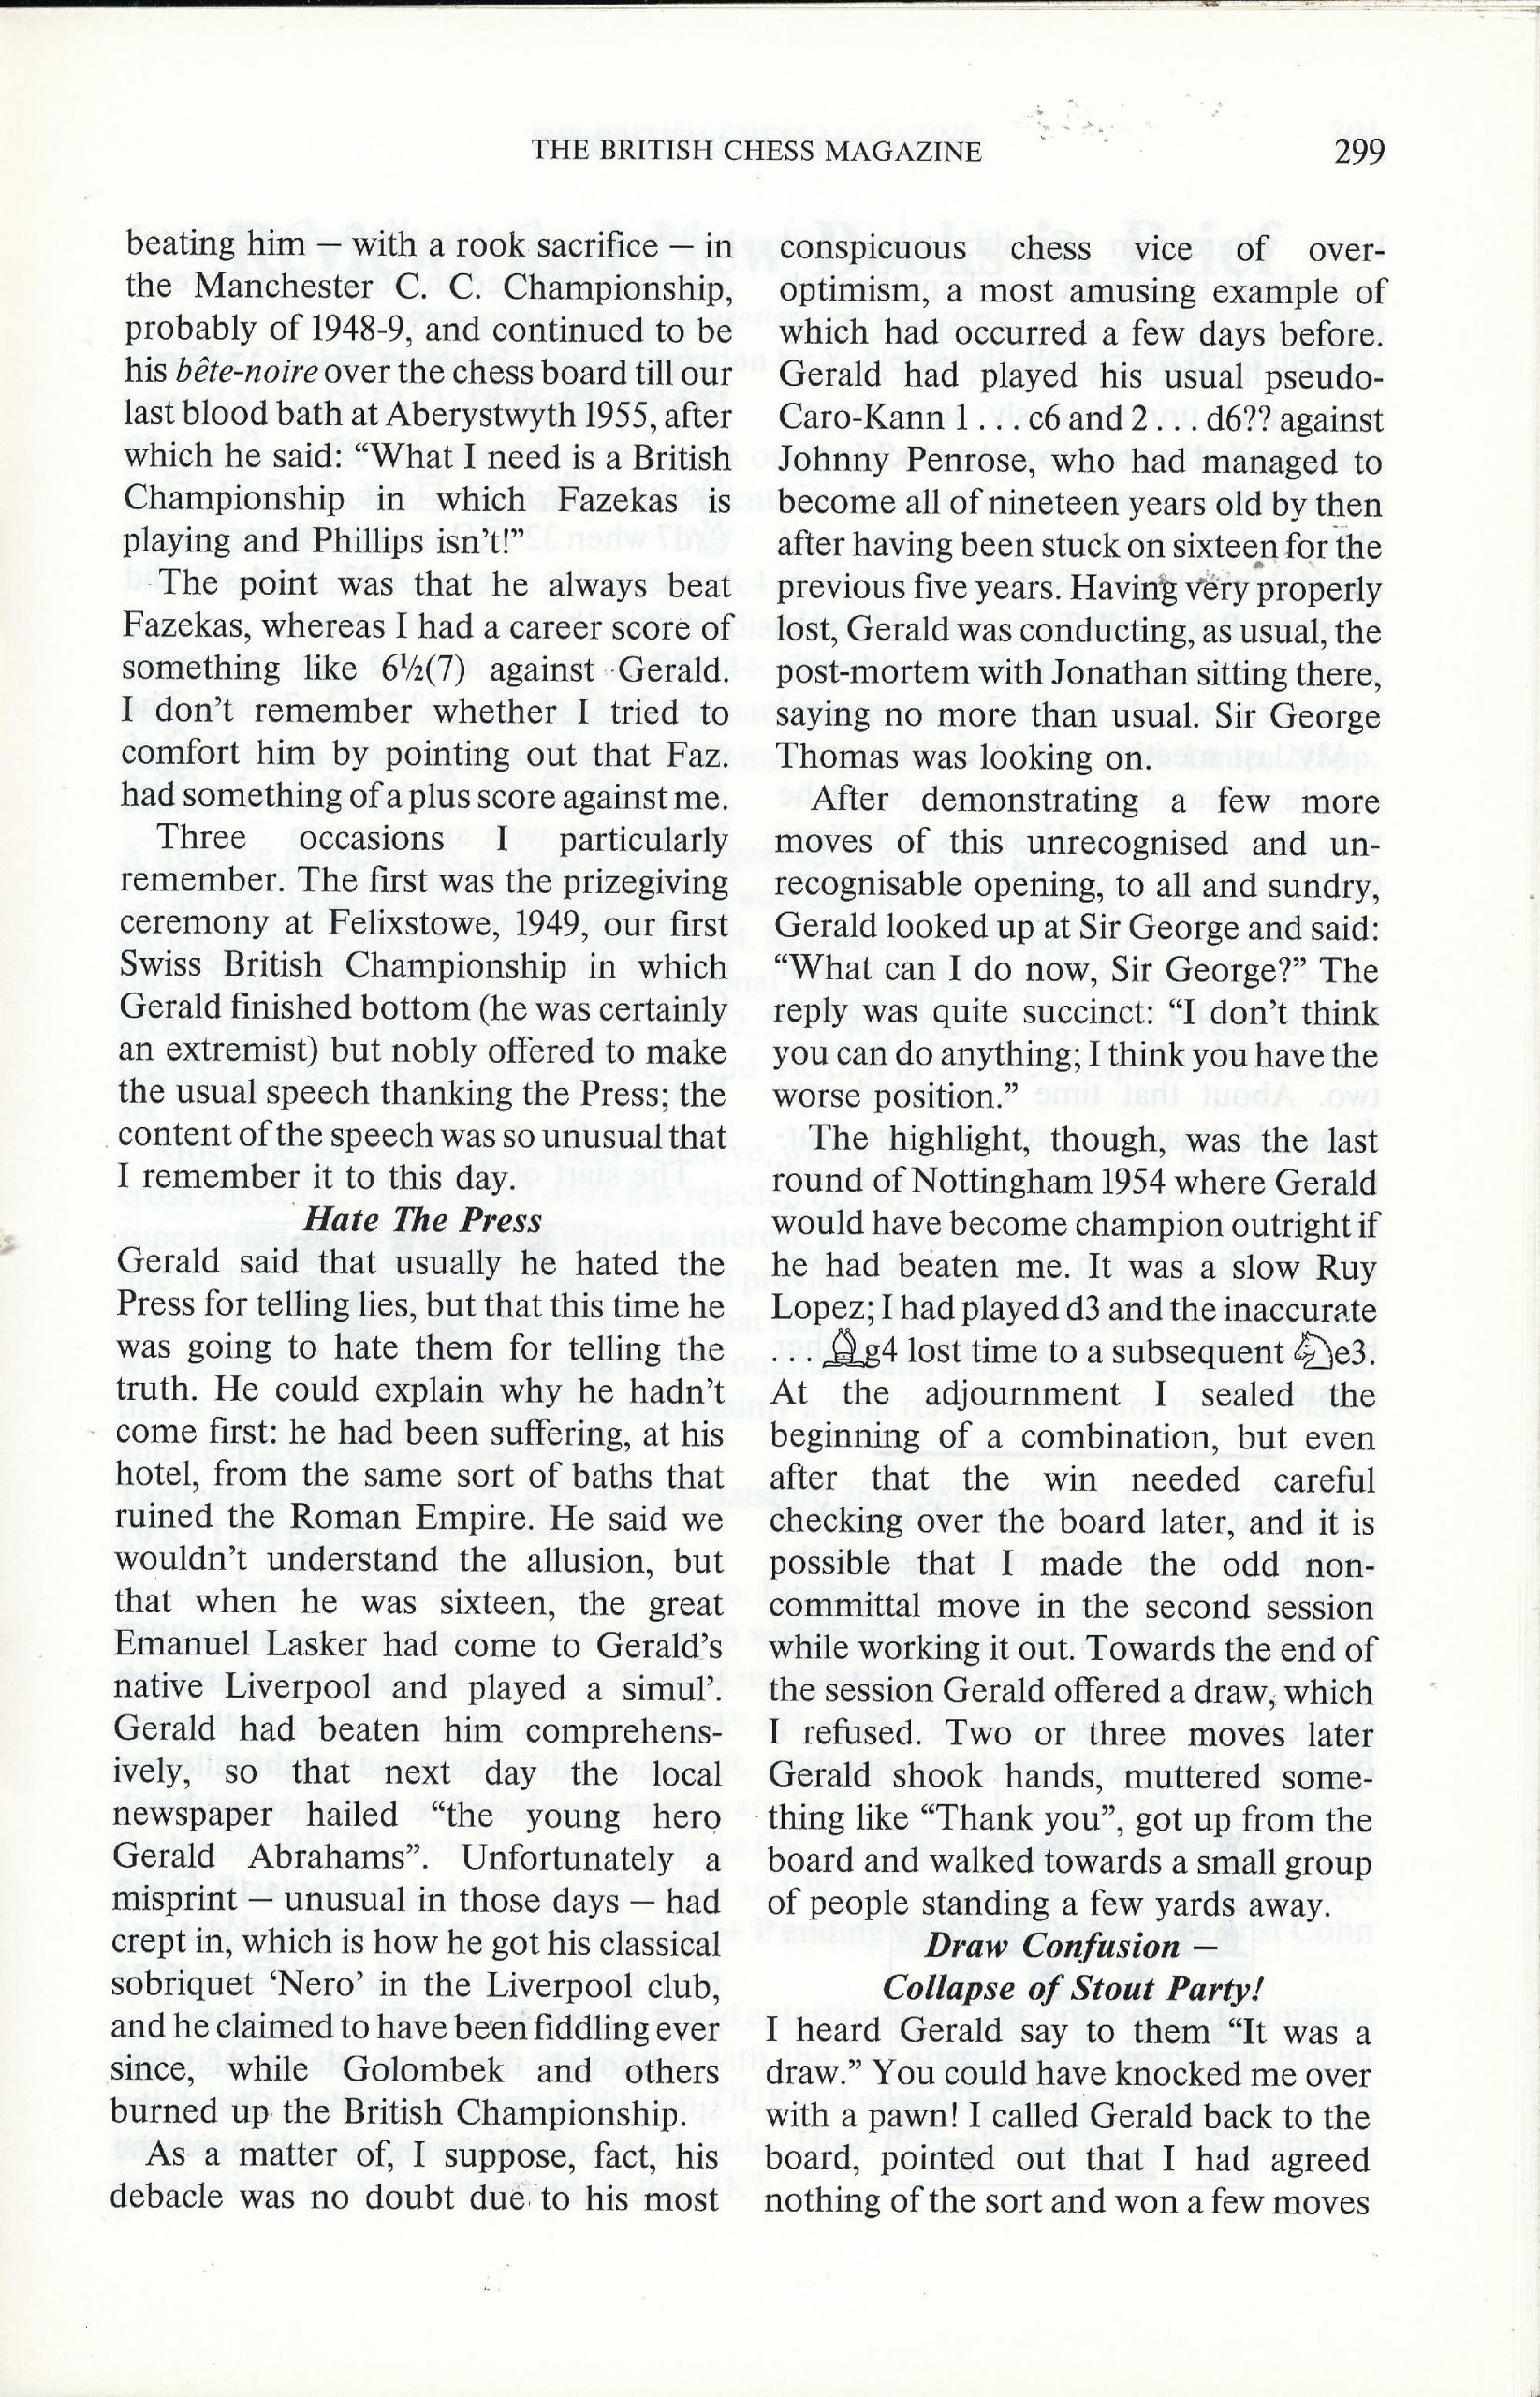 British Chess Magazine, Volume CVIII (1988), Number 7 (July), pp. 299